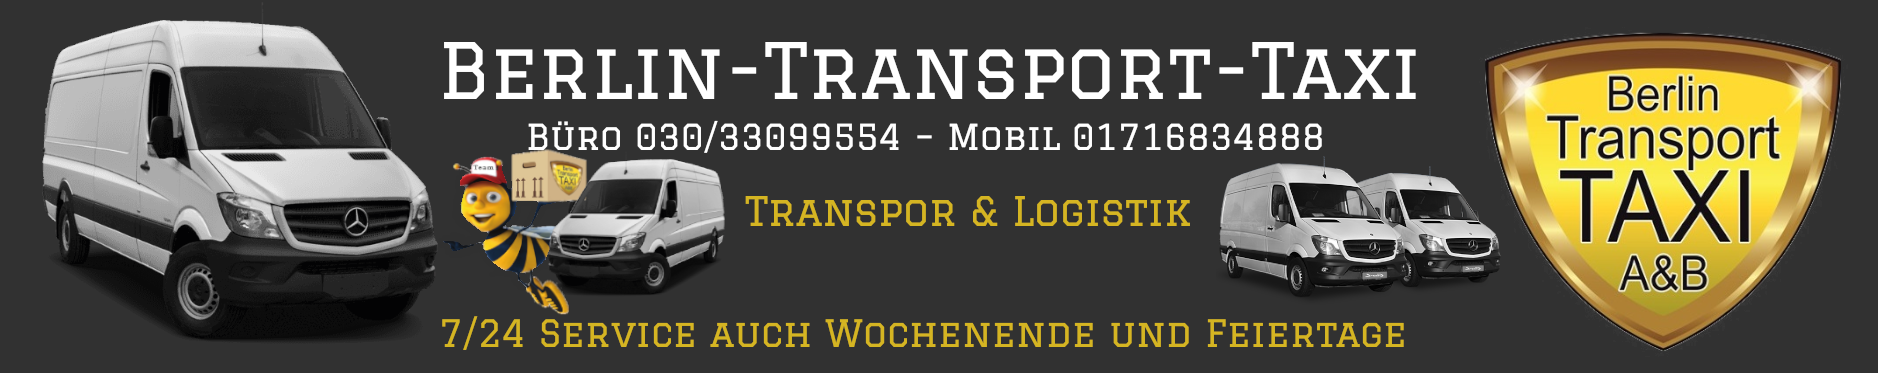 Berlin-Transport-Taxi